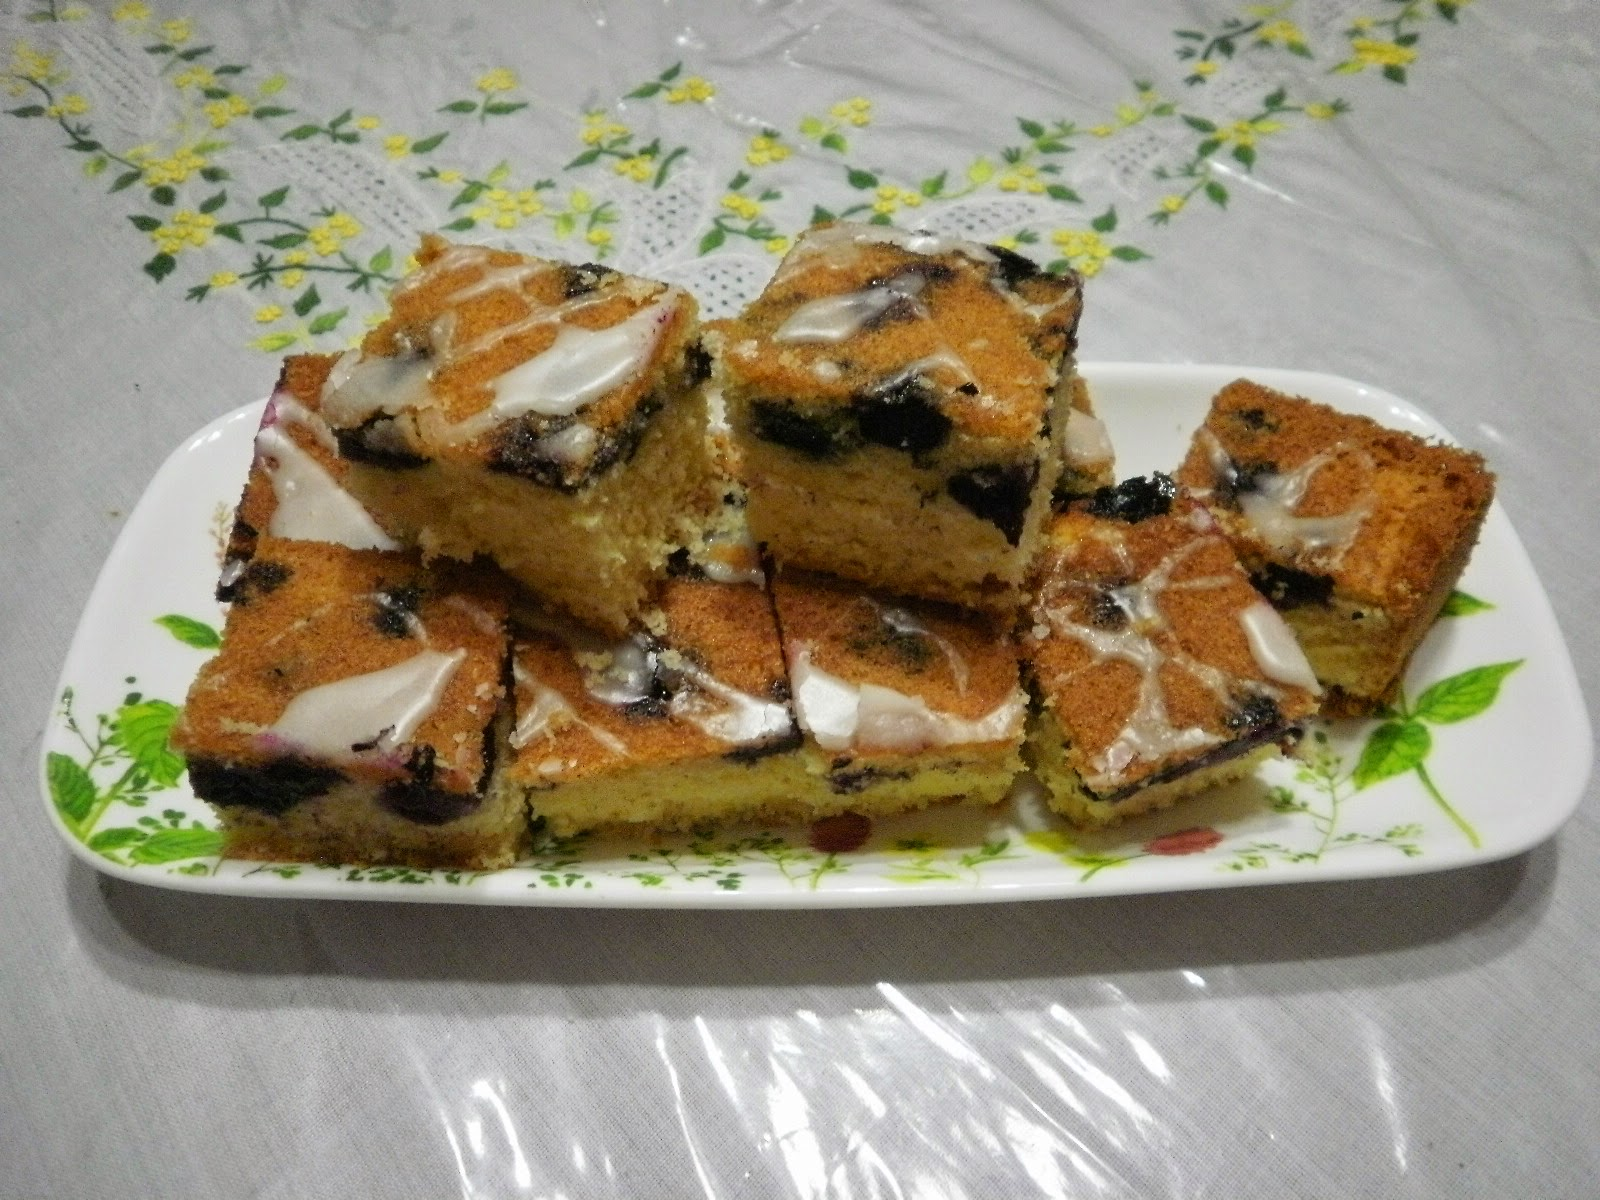 Zara ♥ Baking: MELT IN YOUR MOUTH BLUEBERRY CAKE WITH LEMON GLAZE